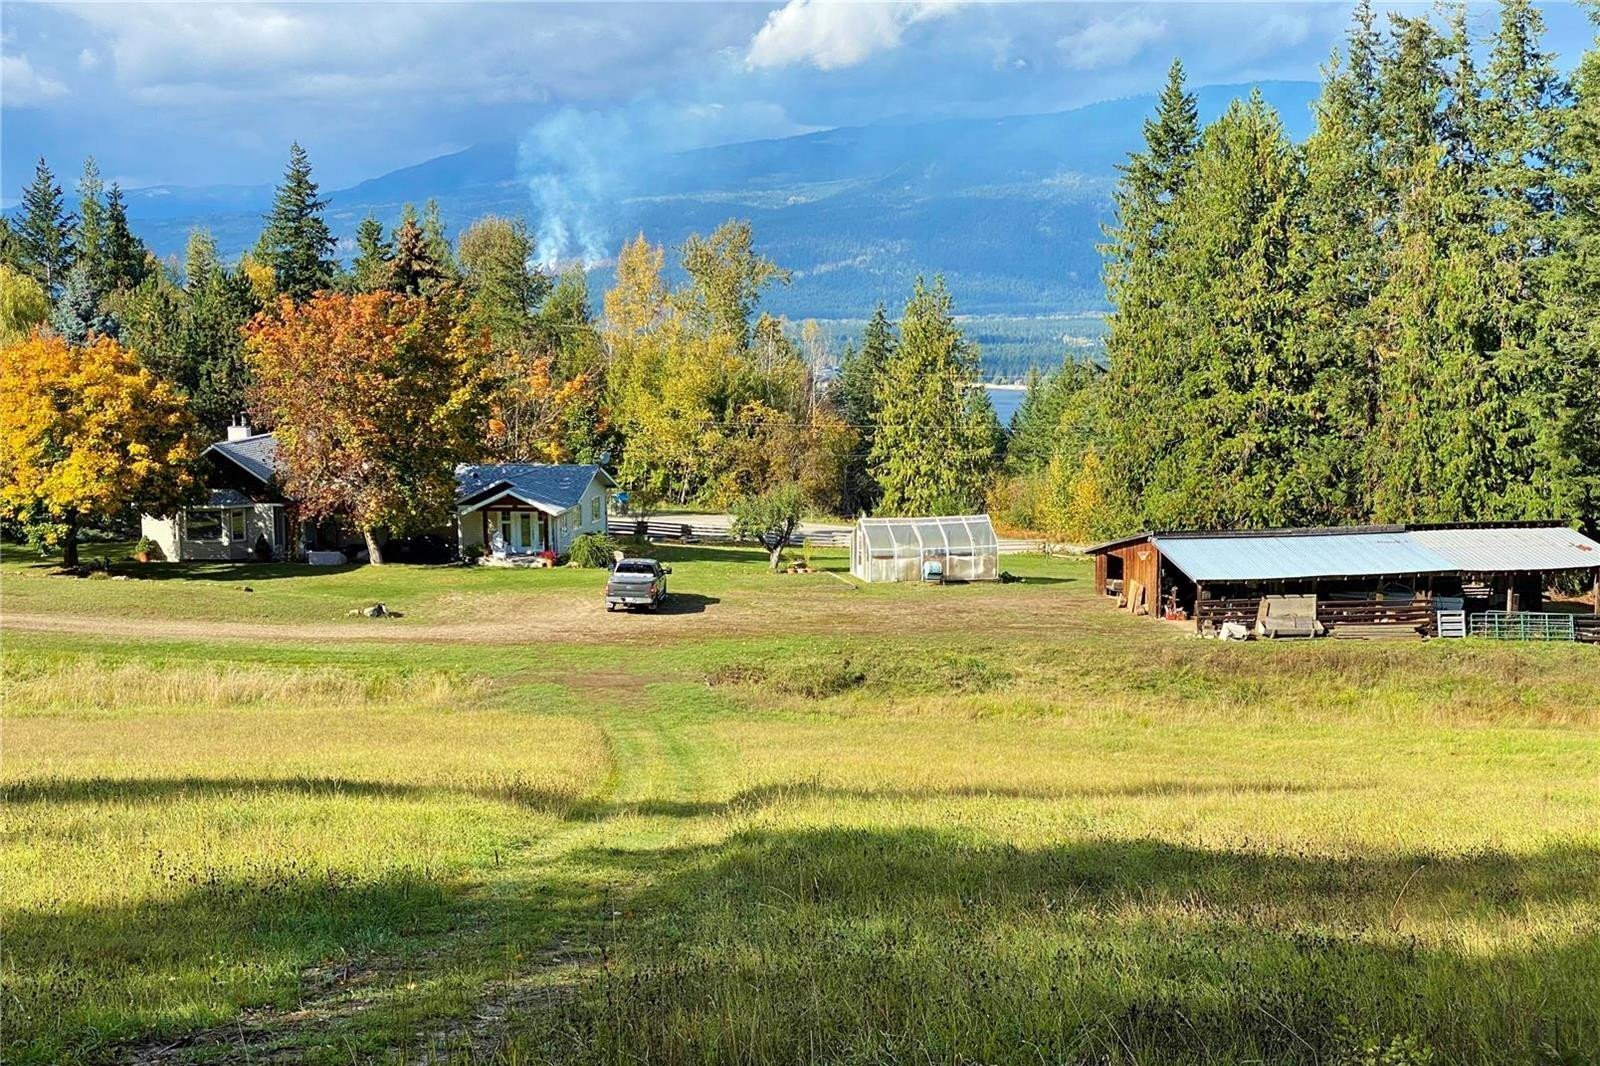 Residential property for sale at 2750 Hilltop Rd Sorrento British Columbia - MLS: 10217744